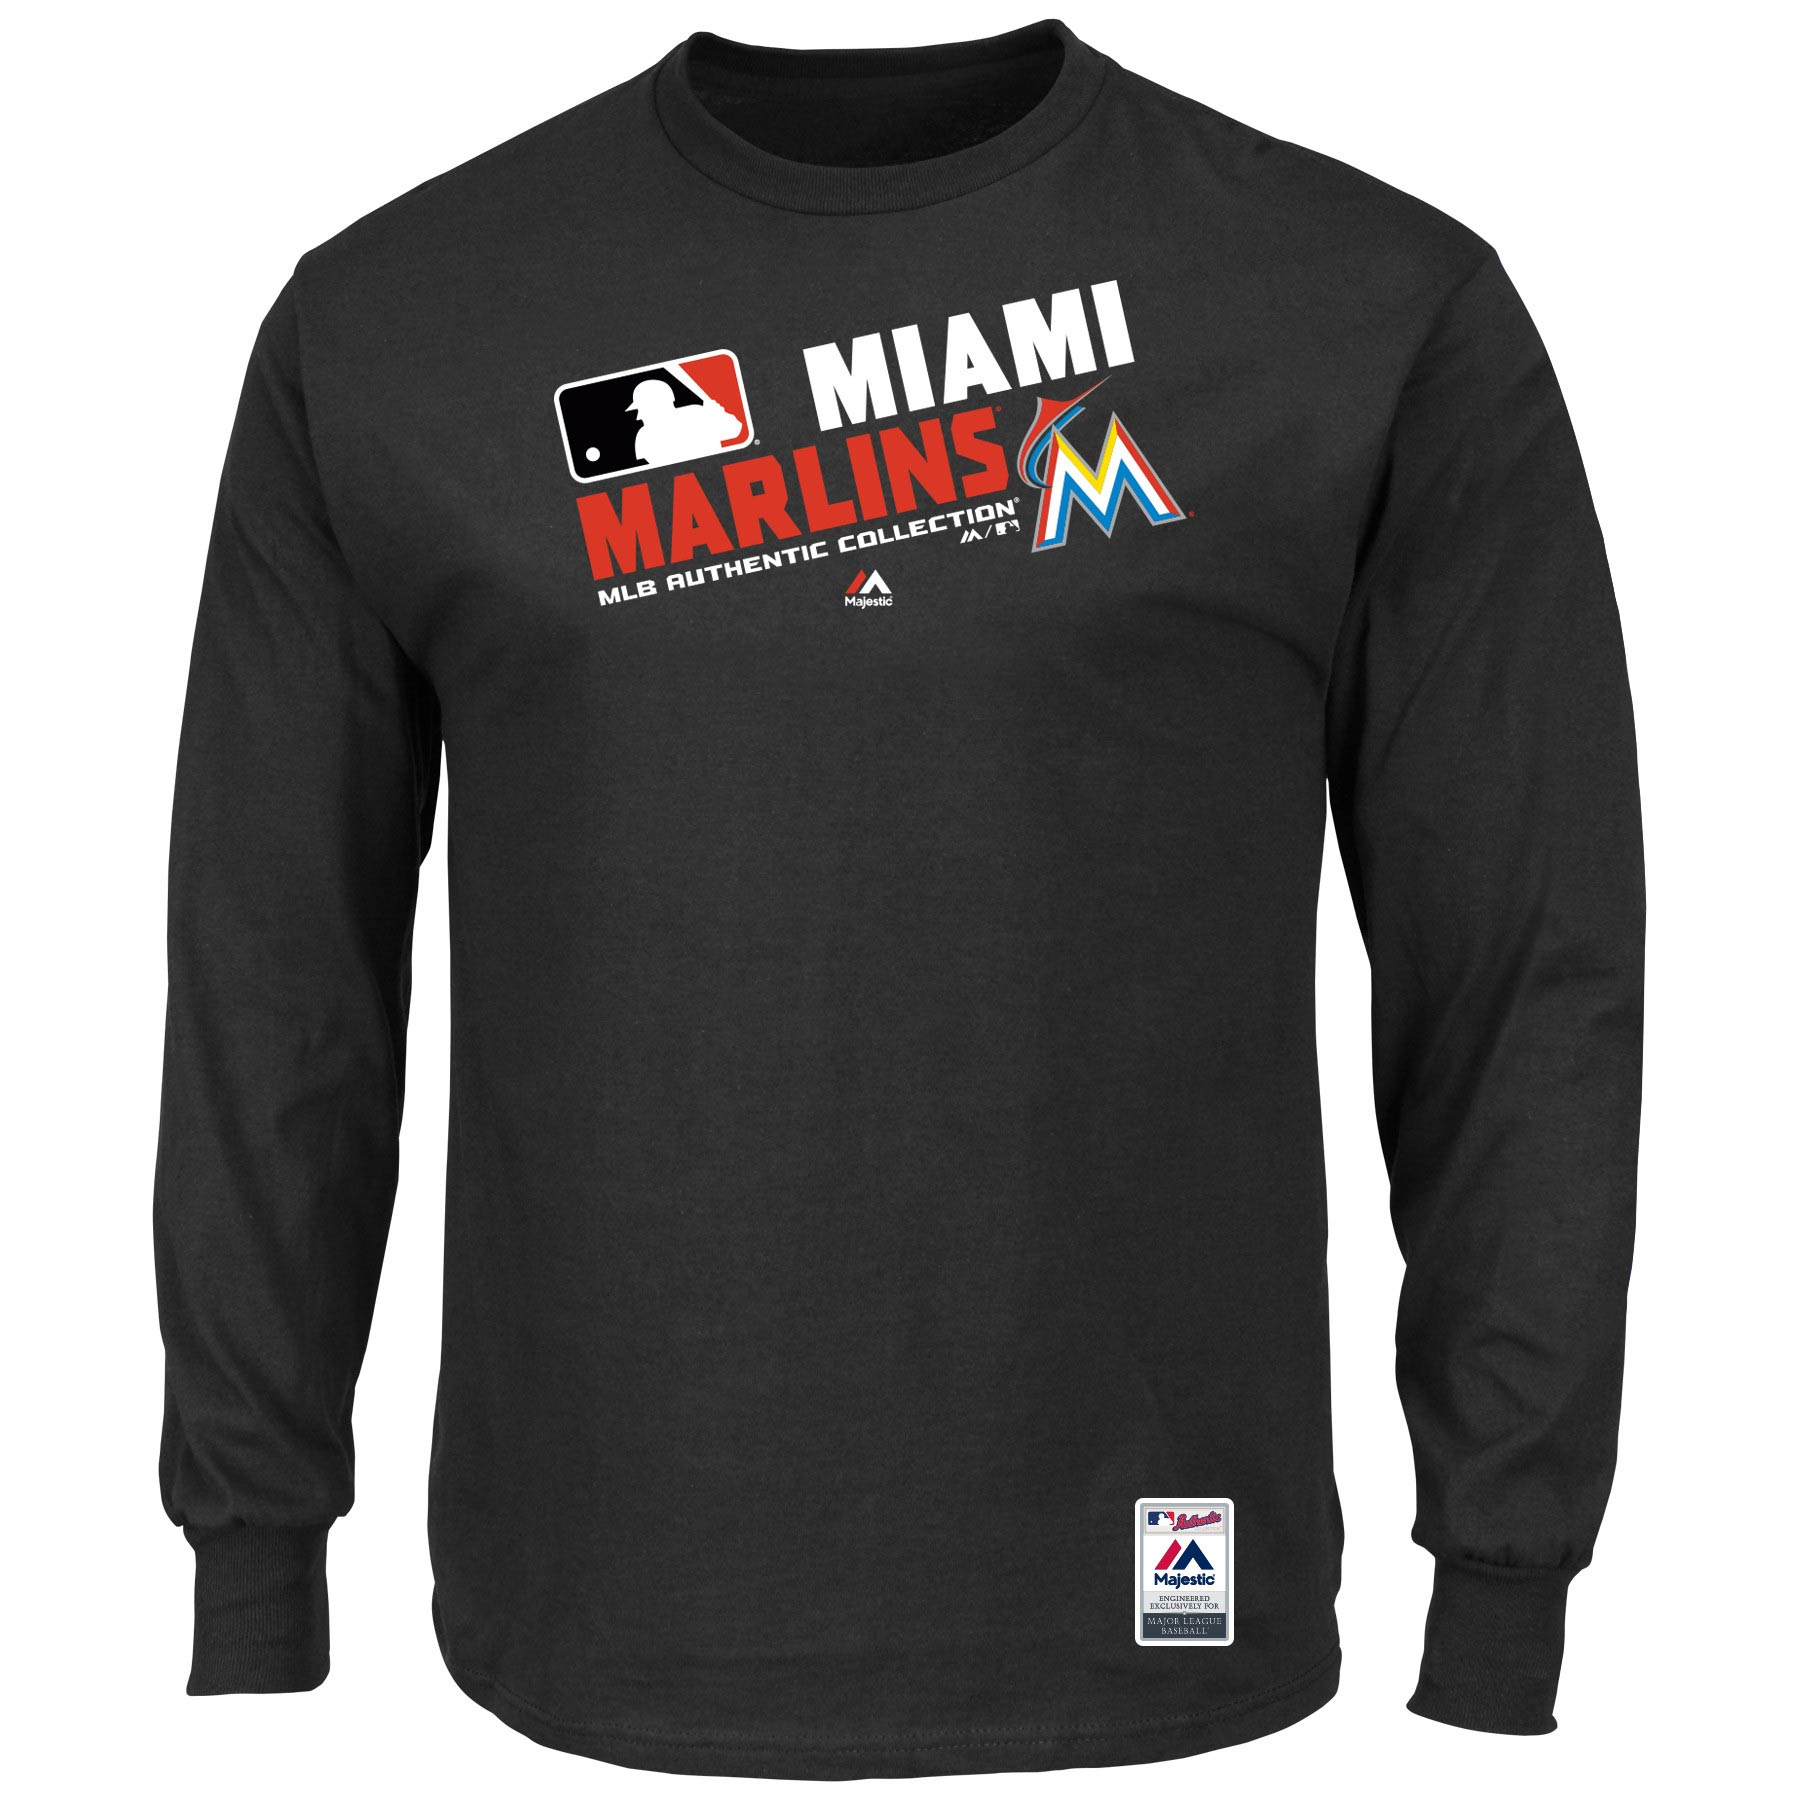 Miami Marlins Majestic Authentic Collection Team Choice Long Sleeve T-Shirt - Black